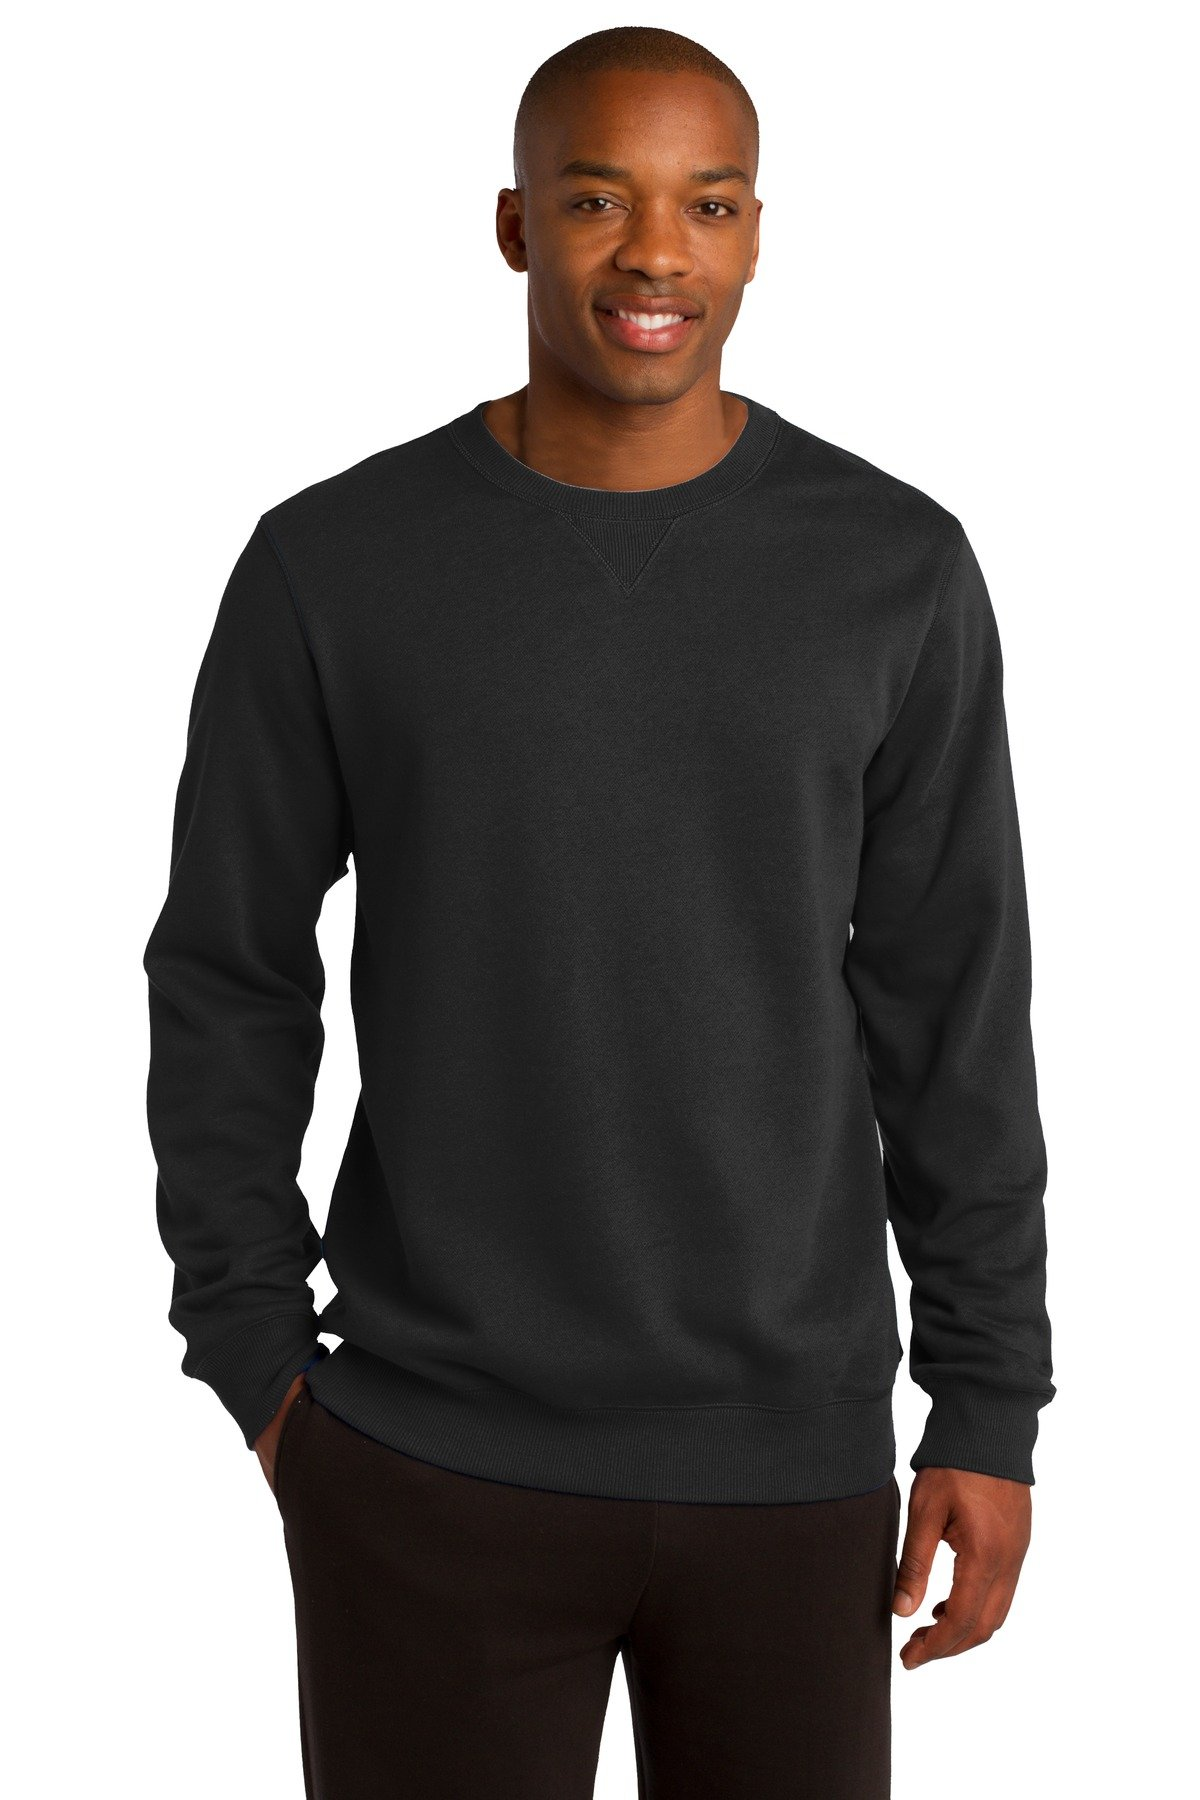 Sport-Tek Men's Crewneck Sweatshirt S Black by Sport-Tek